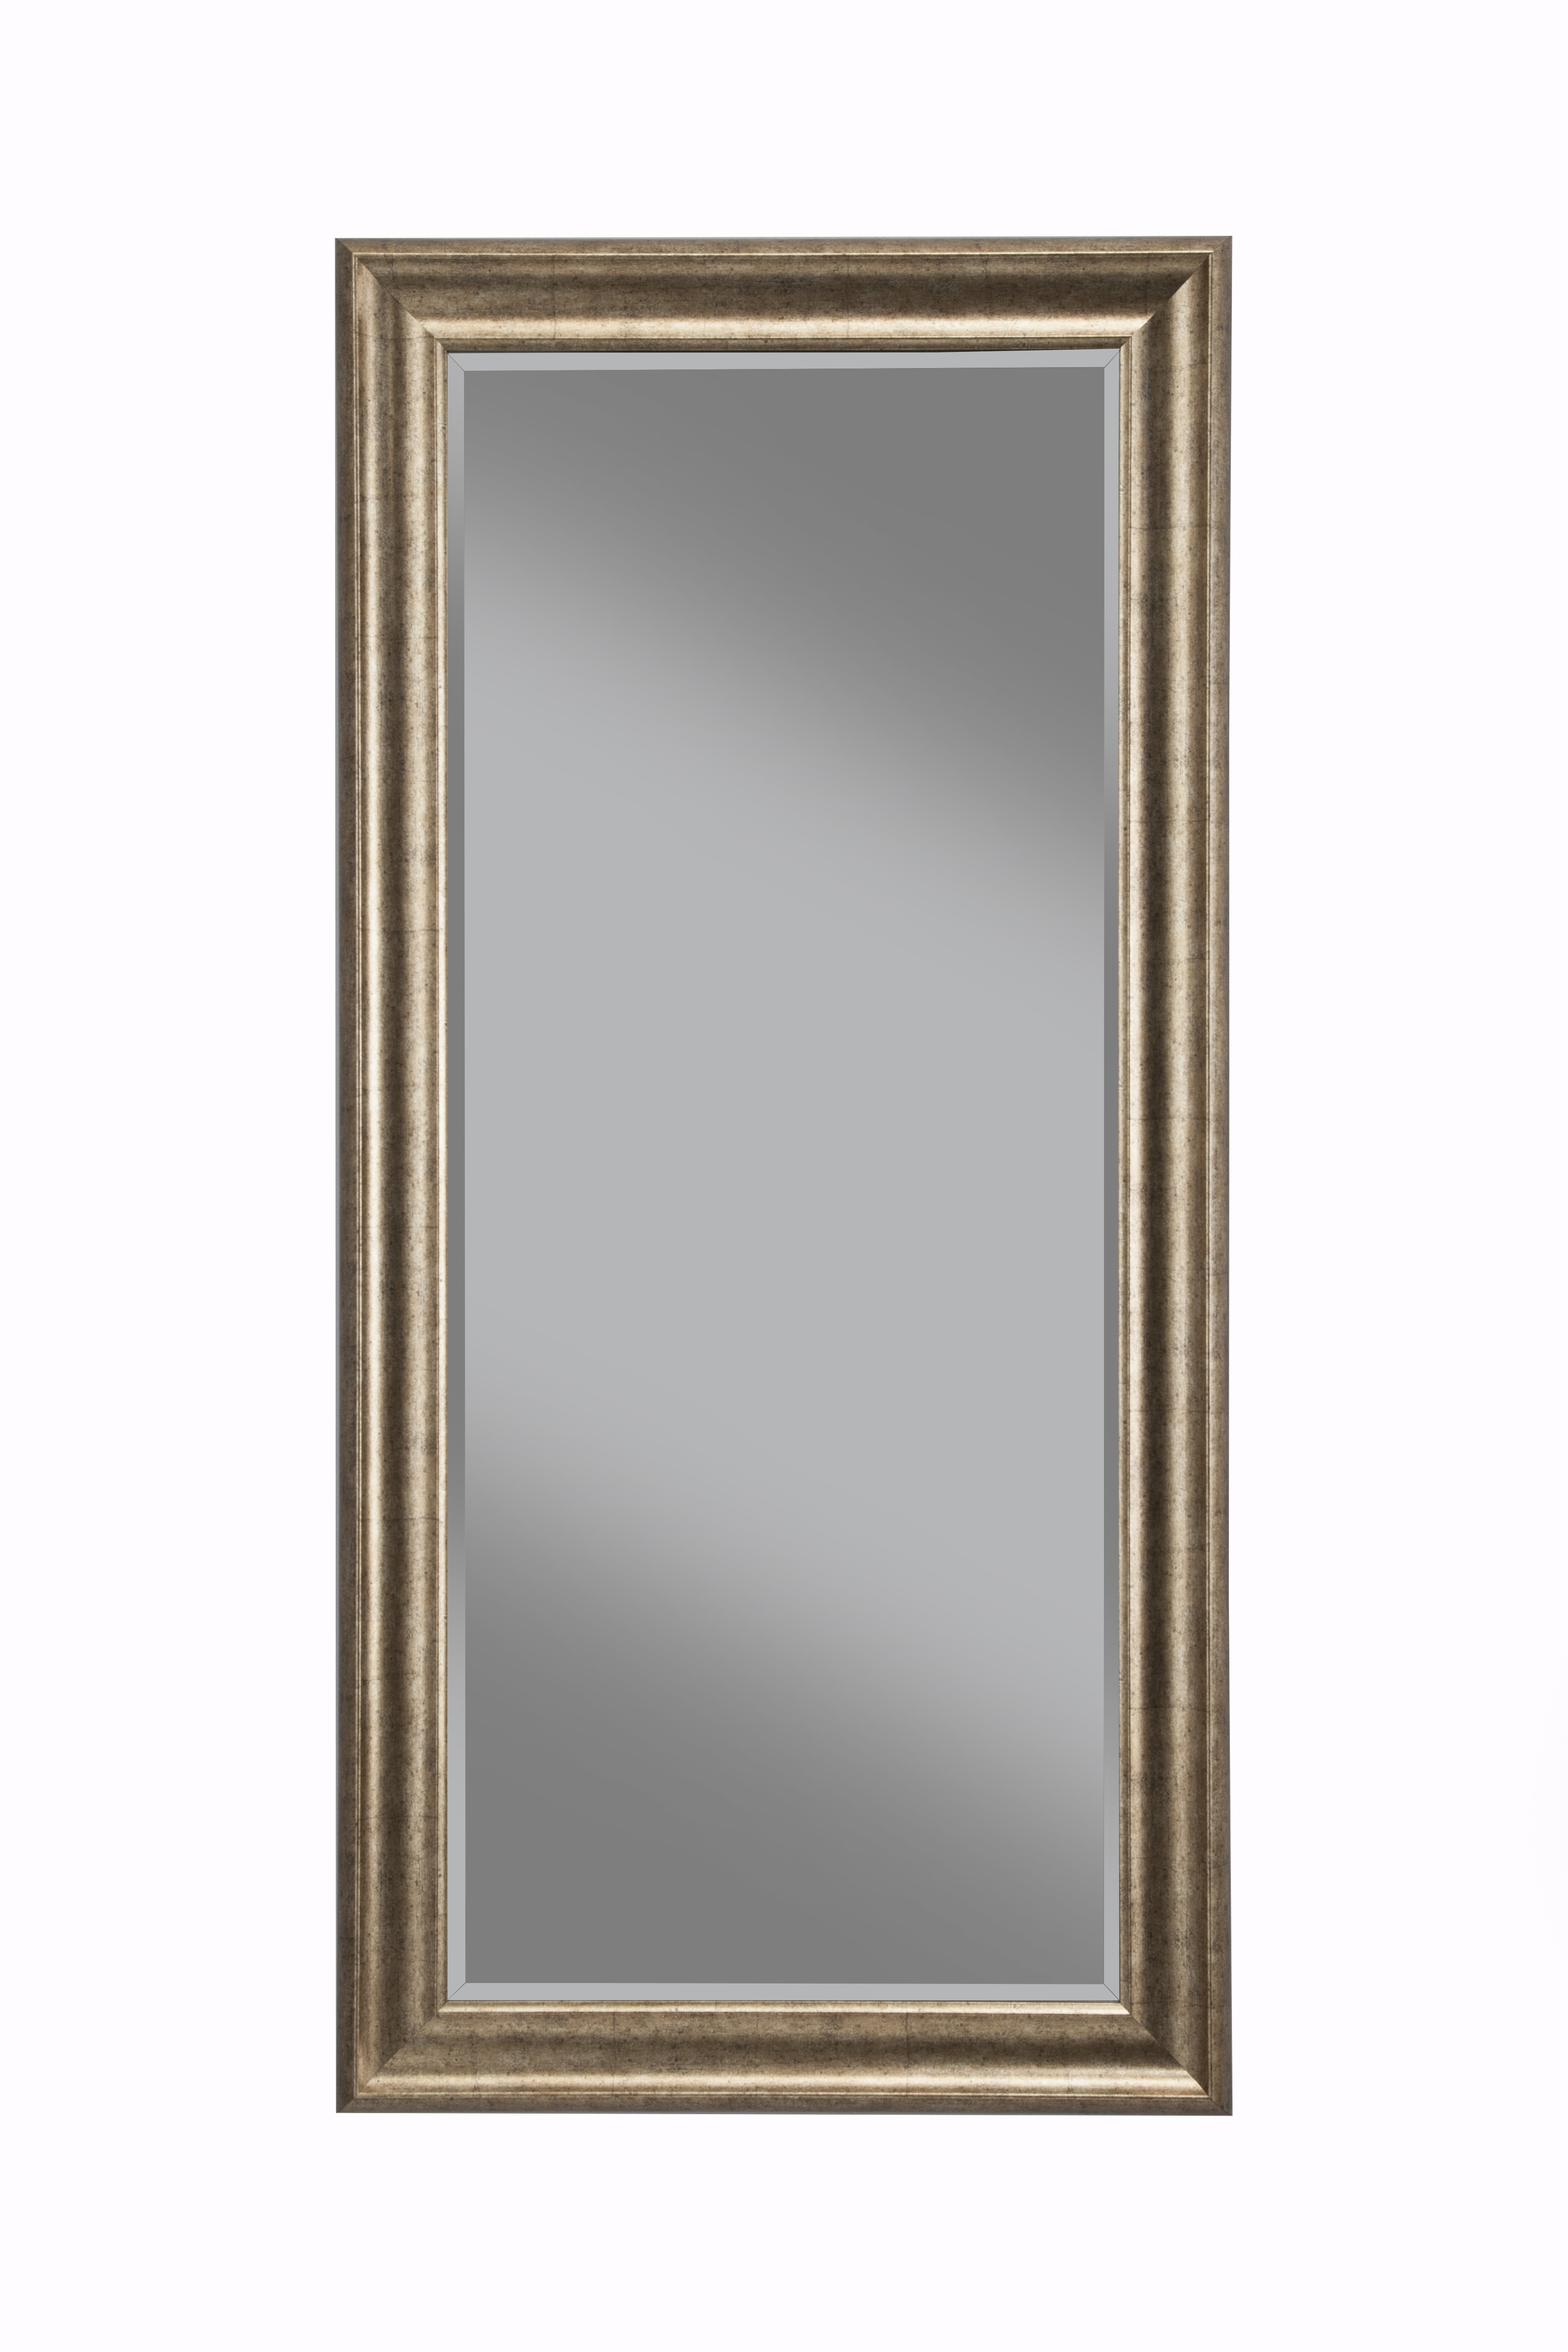 Allmodern Within Lugo Rectangle Accent Mirrors (View 1 of 20)